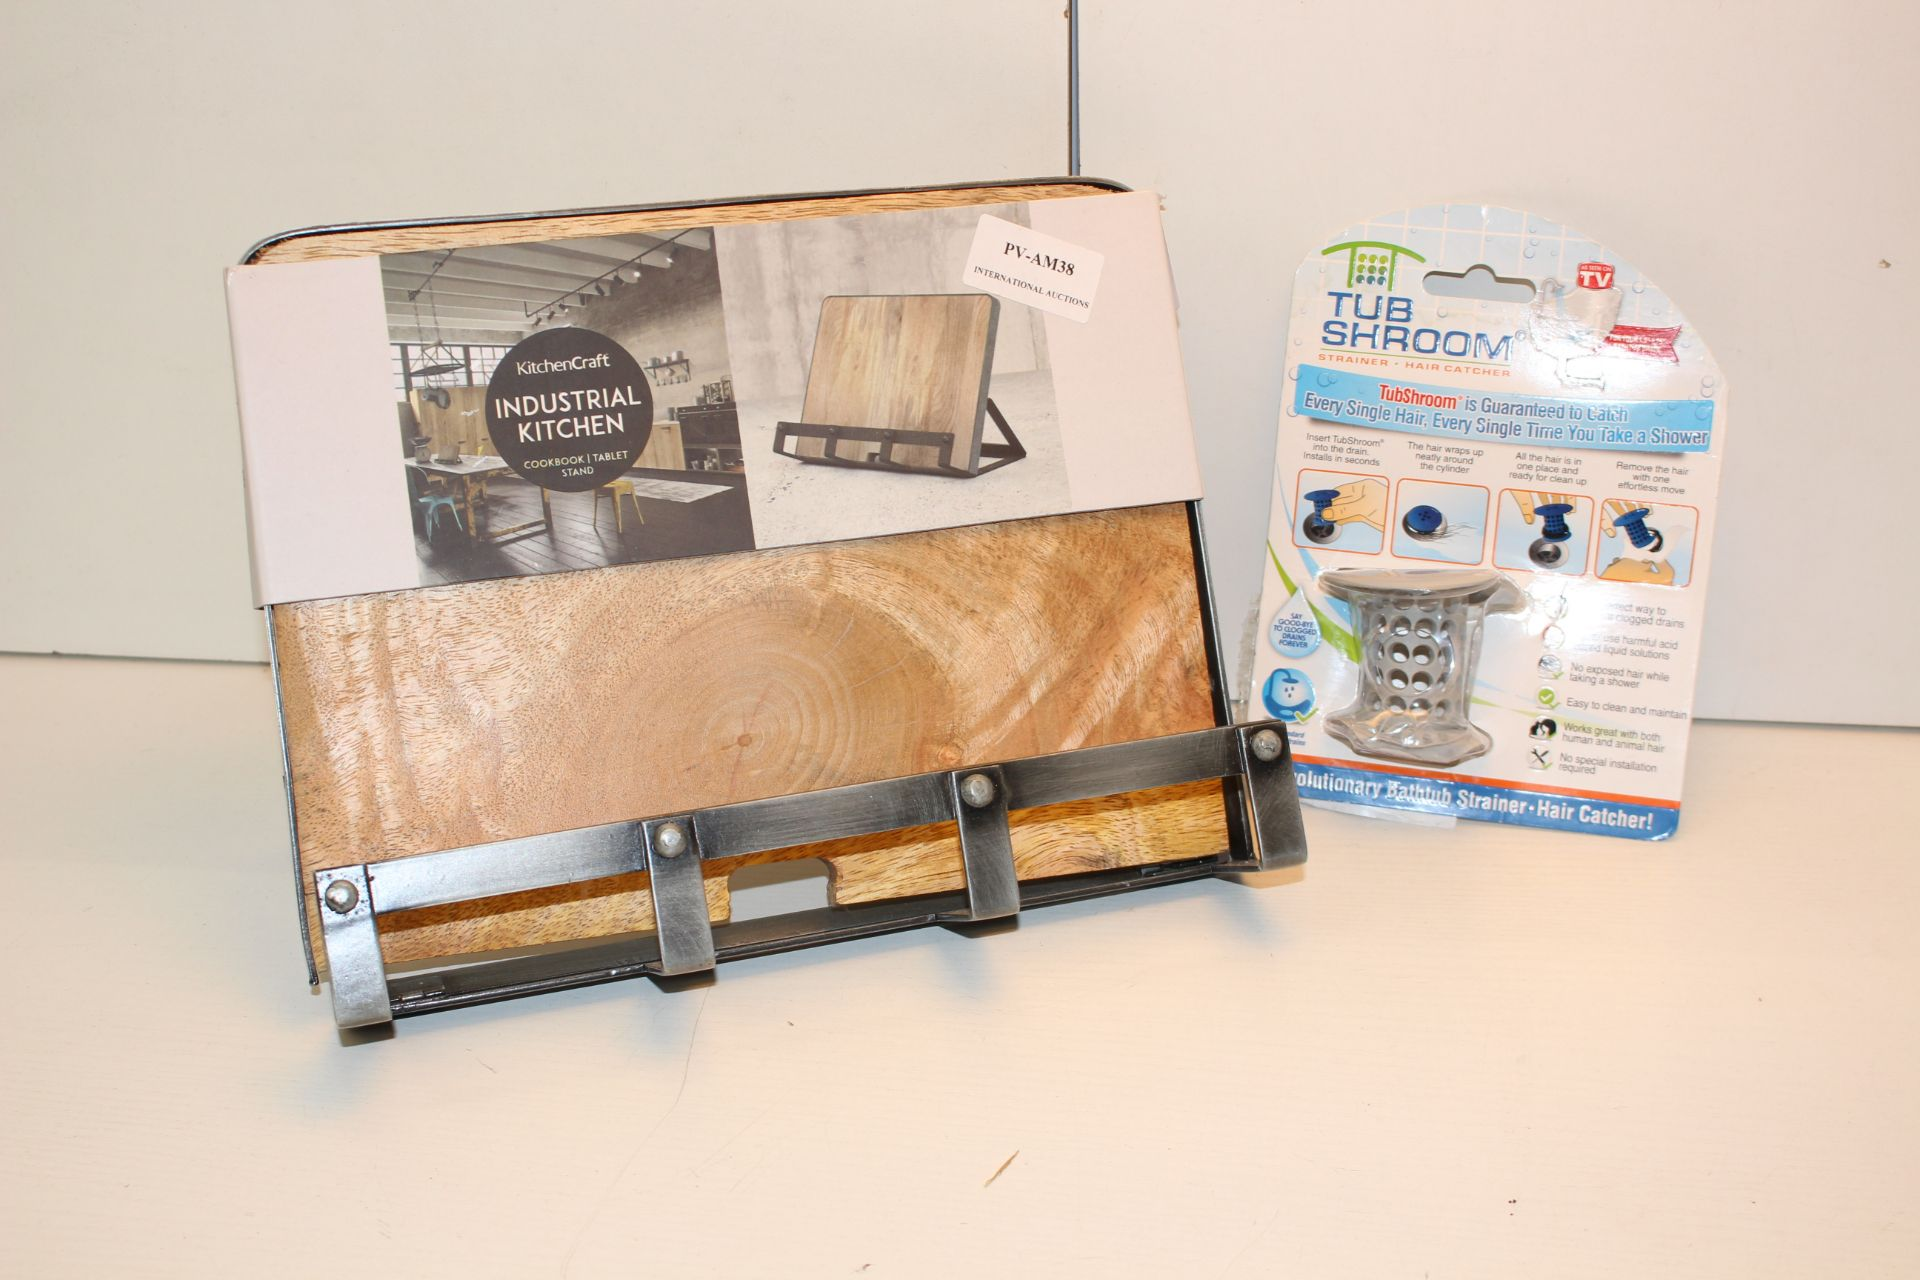 X2 KITCHEN ITEMS INCLUDING KITCHEN KRAFT IPAD STAND AND TUB SHROOM Condition ReportAppraisal